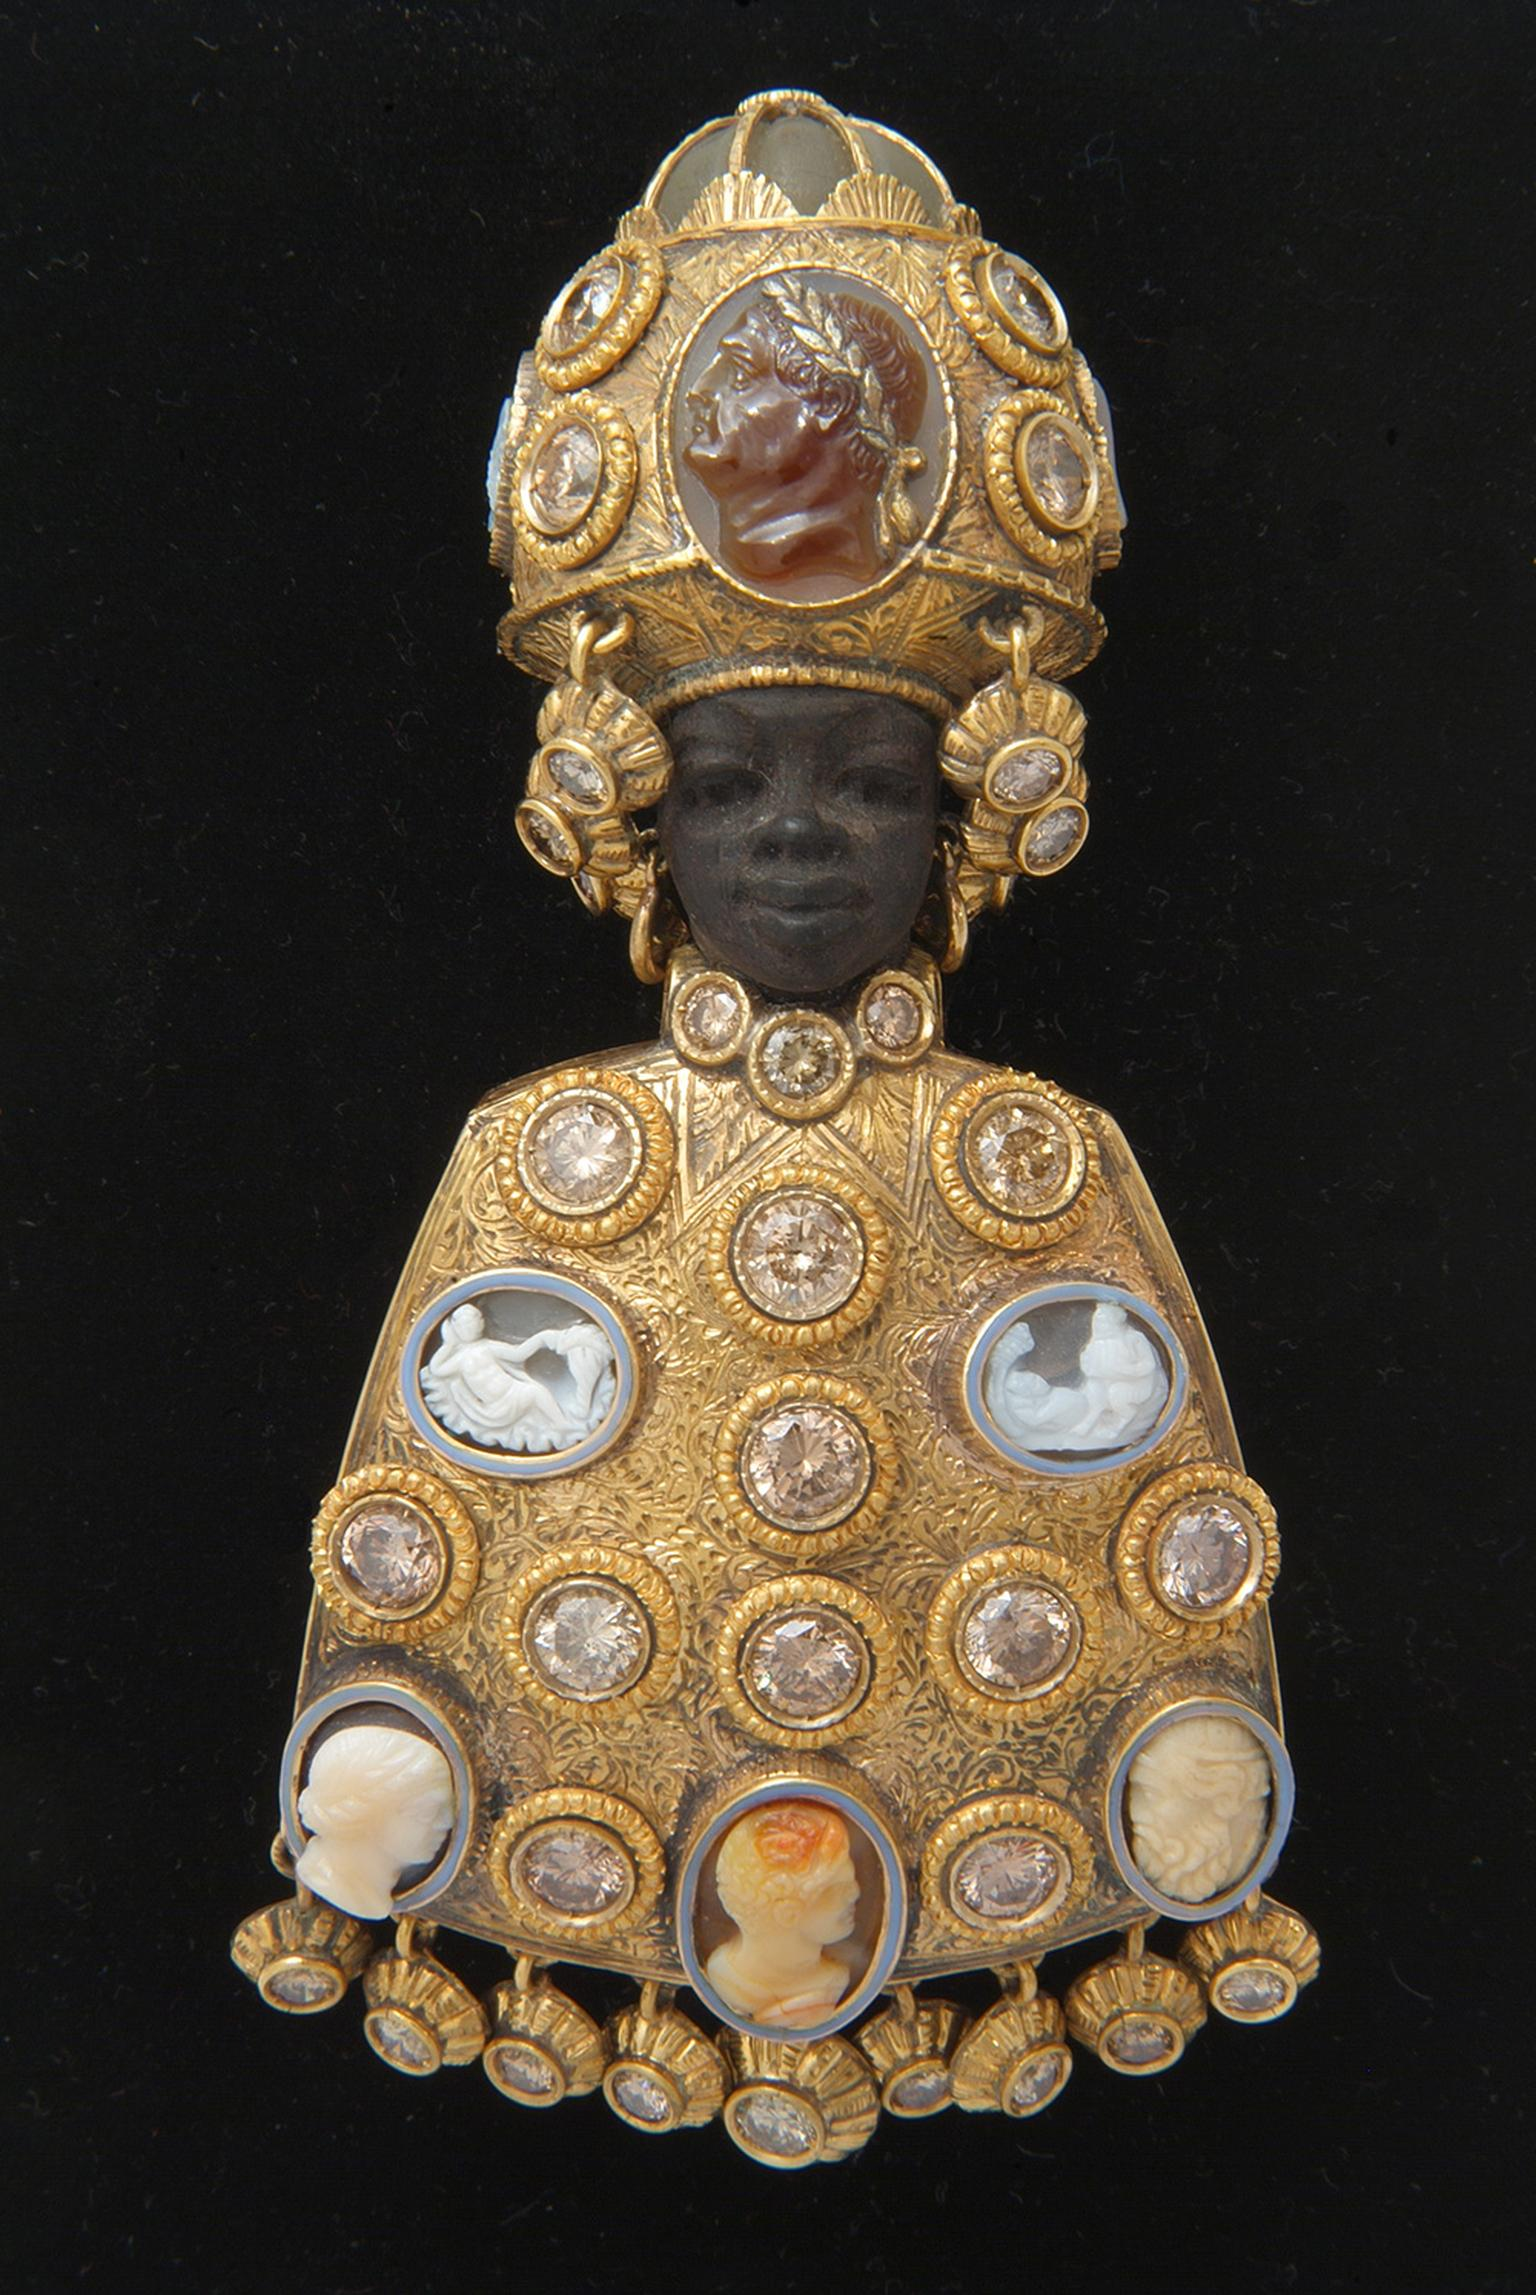 Attilio Codognato Blackamoor brooch in ebony and diamonds